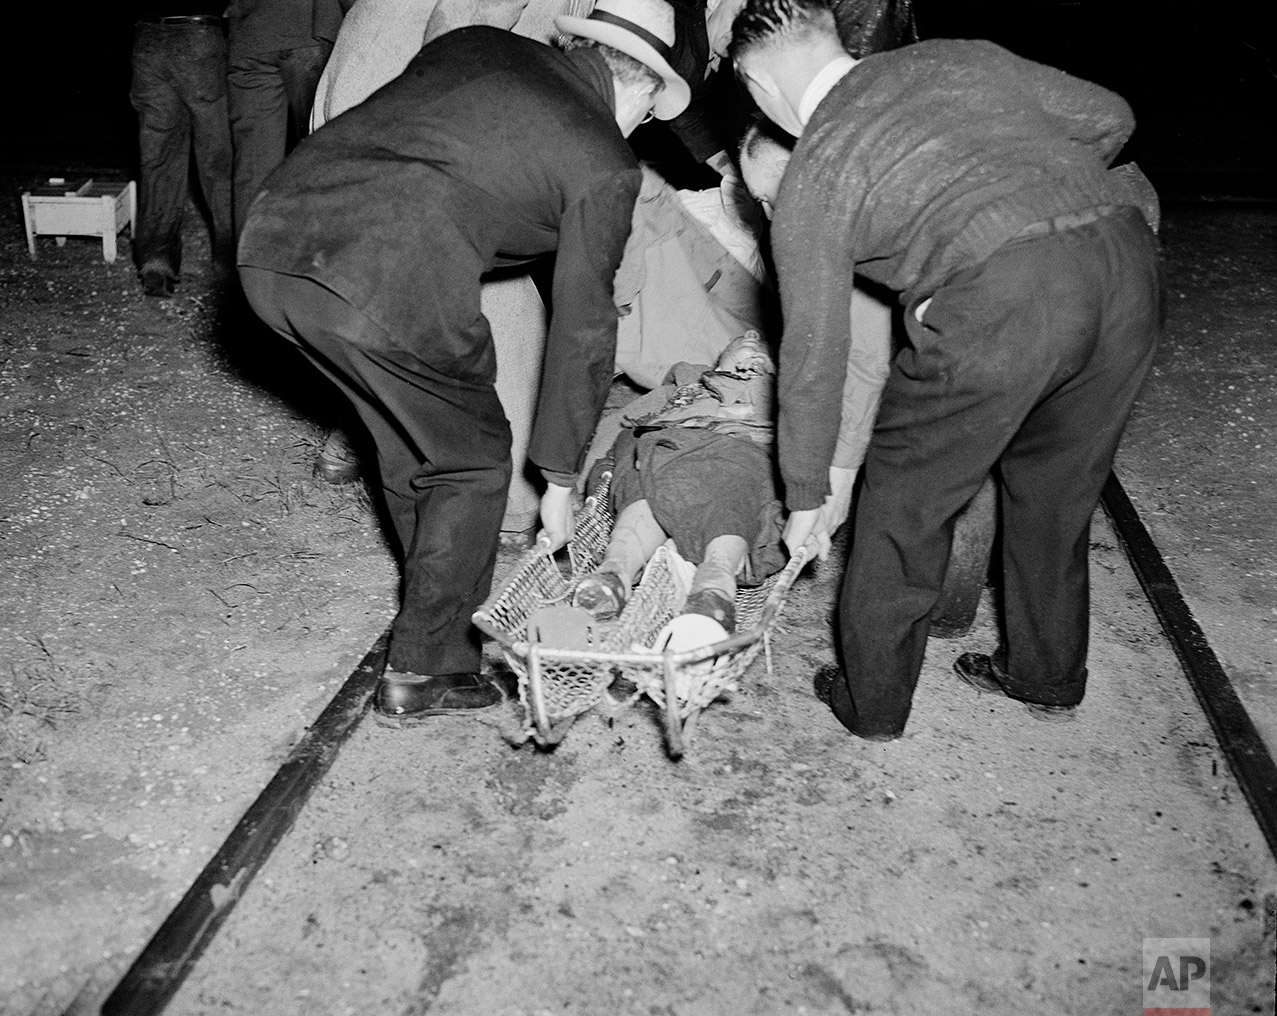 A victim of the Hindenburg disaster is taken away in a stretcher in the aftermath of the airship crash in Lakehurst, N.J., May 6, 1937.  The German-built zeppelin burst into flame in mid-air as it was landing after its transatlantic voyage, carrying 97 passengers and crew. Thirty-five people on board and one ground crew member were killed.  (AP Photo/Murray Becker)